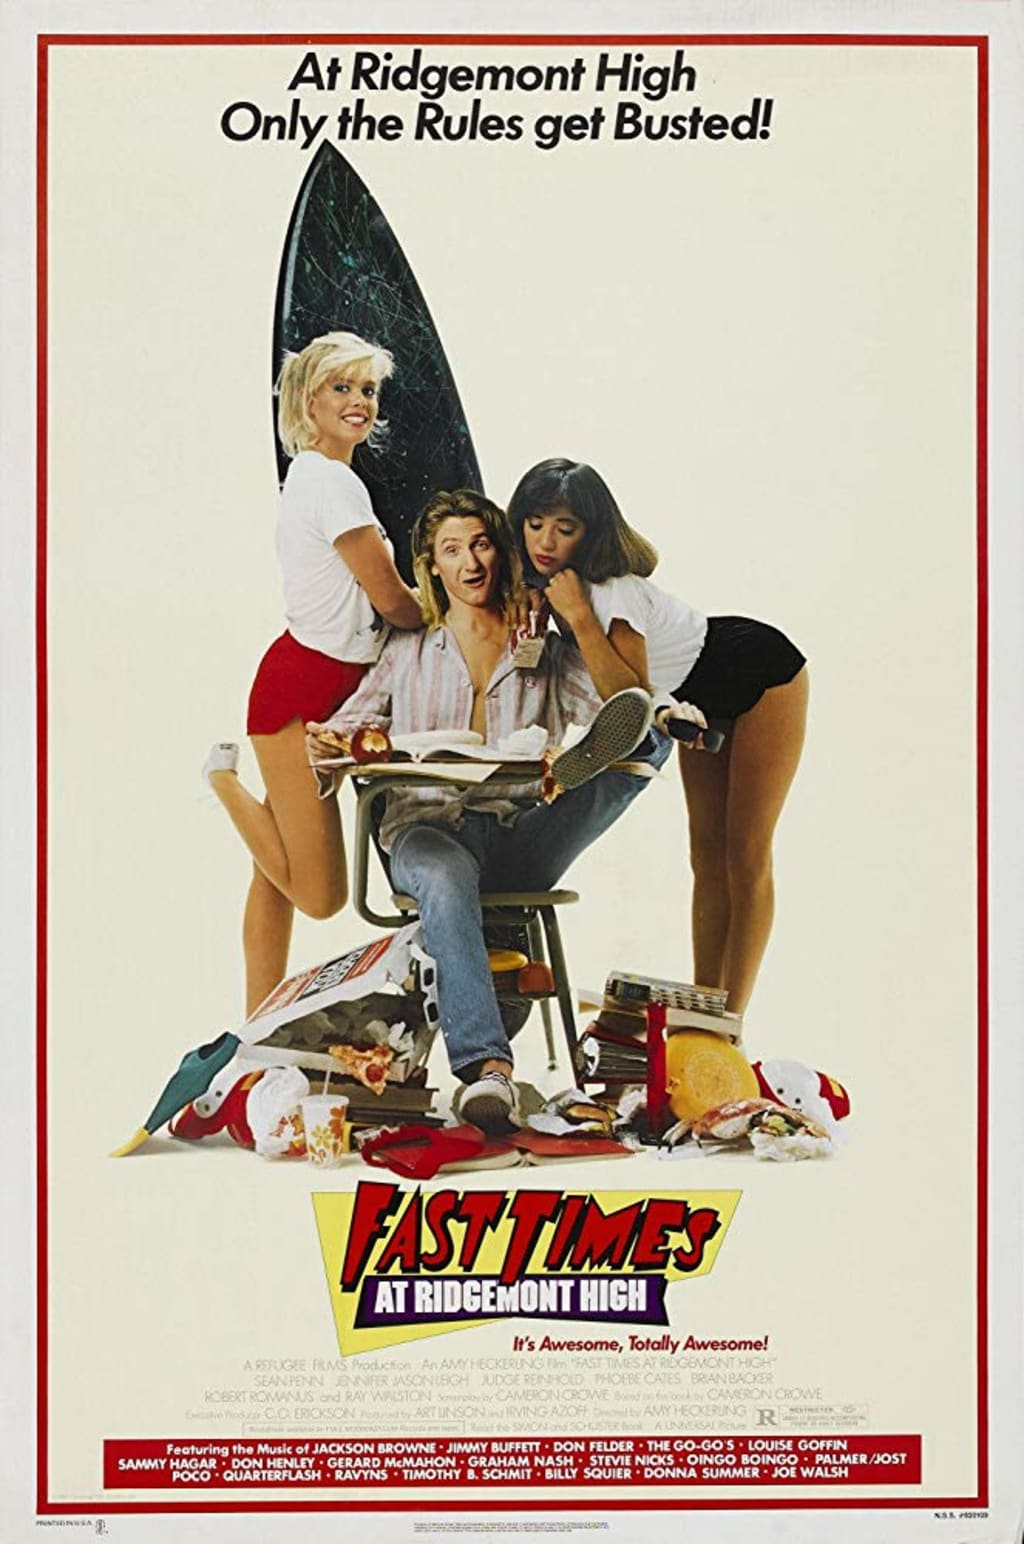 So Alive at Plattsburgh State with Those 'Fast Times at Ridgemont High'